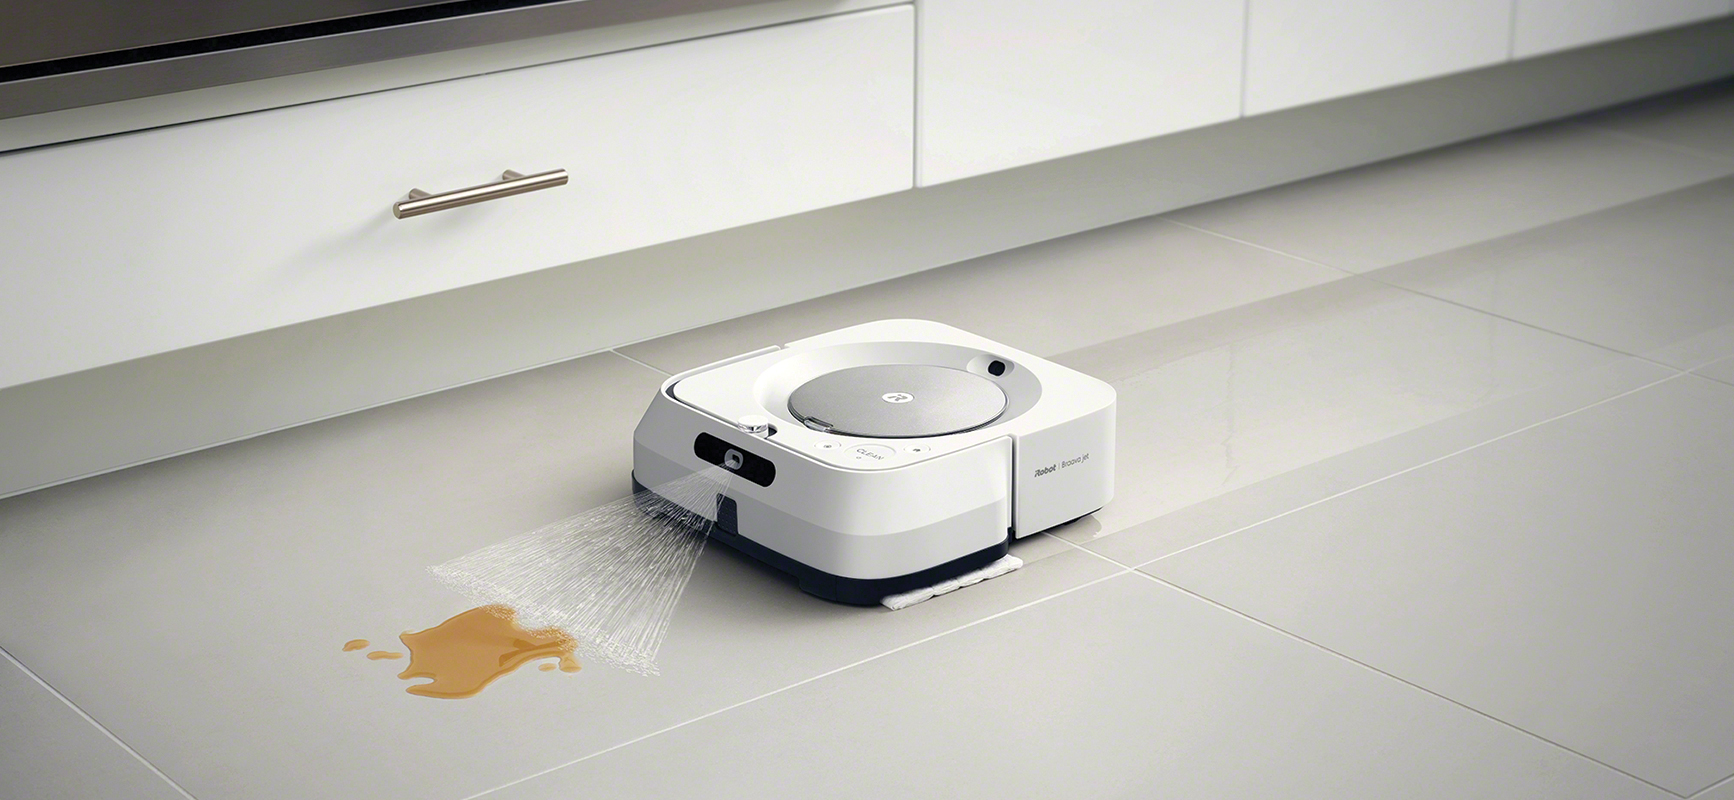 irobot braava m6 spray